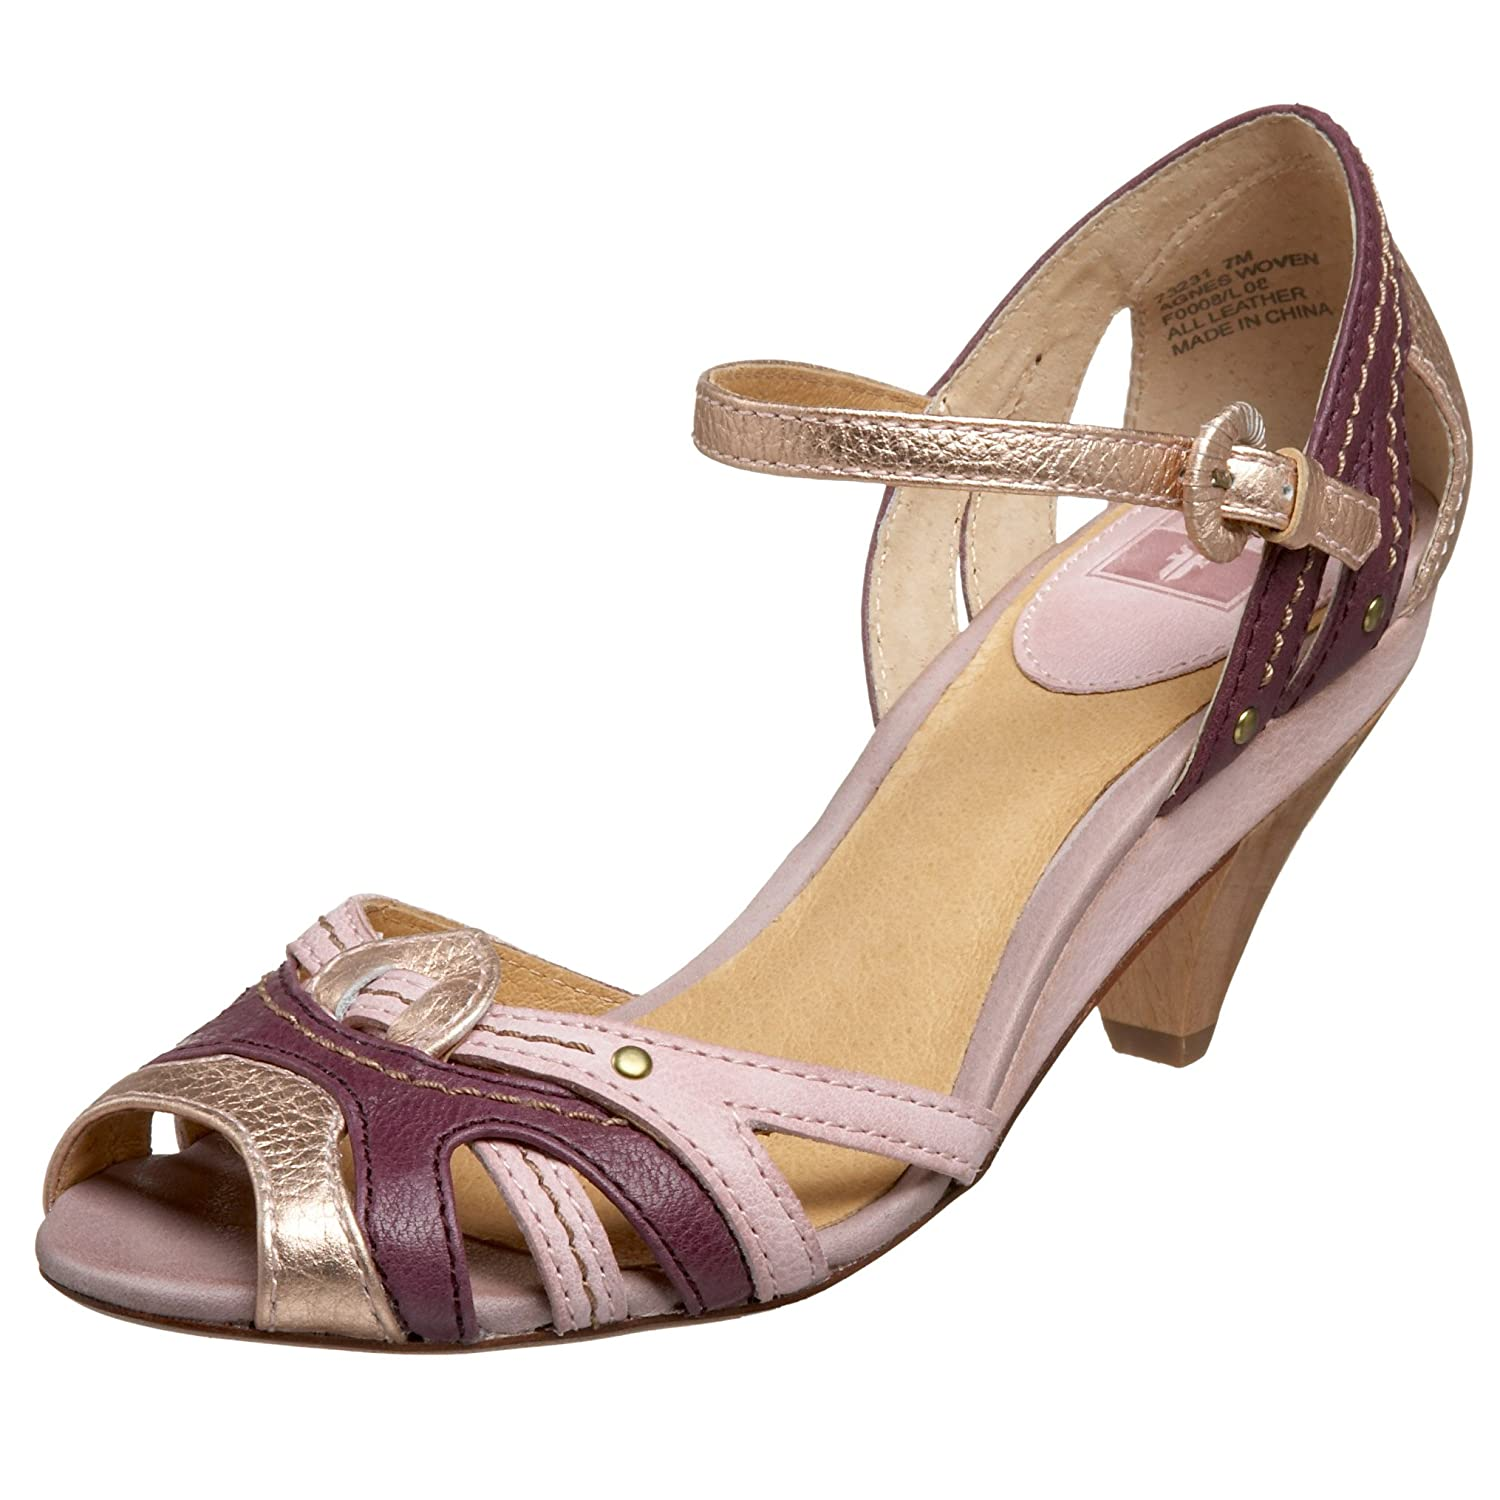 FRYE Women's Agnes Ankle Strap Heel - Free Overnight Shipping & Return Shipping: Endless.com :  leather mid-heel retro heels